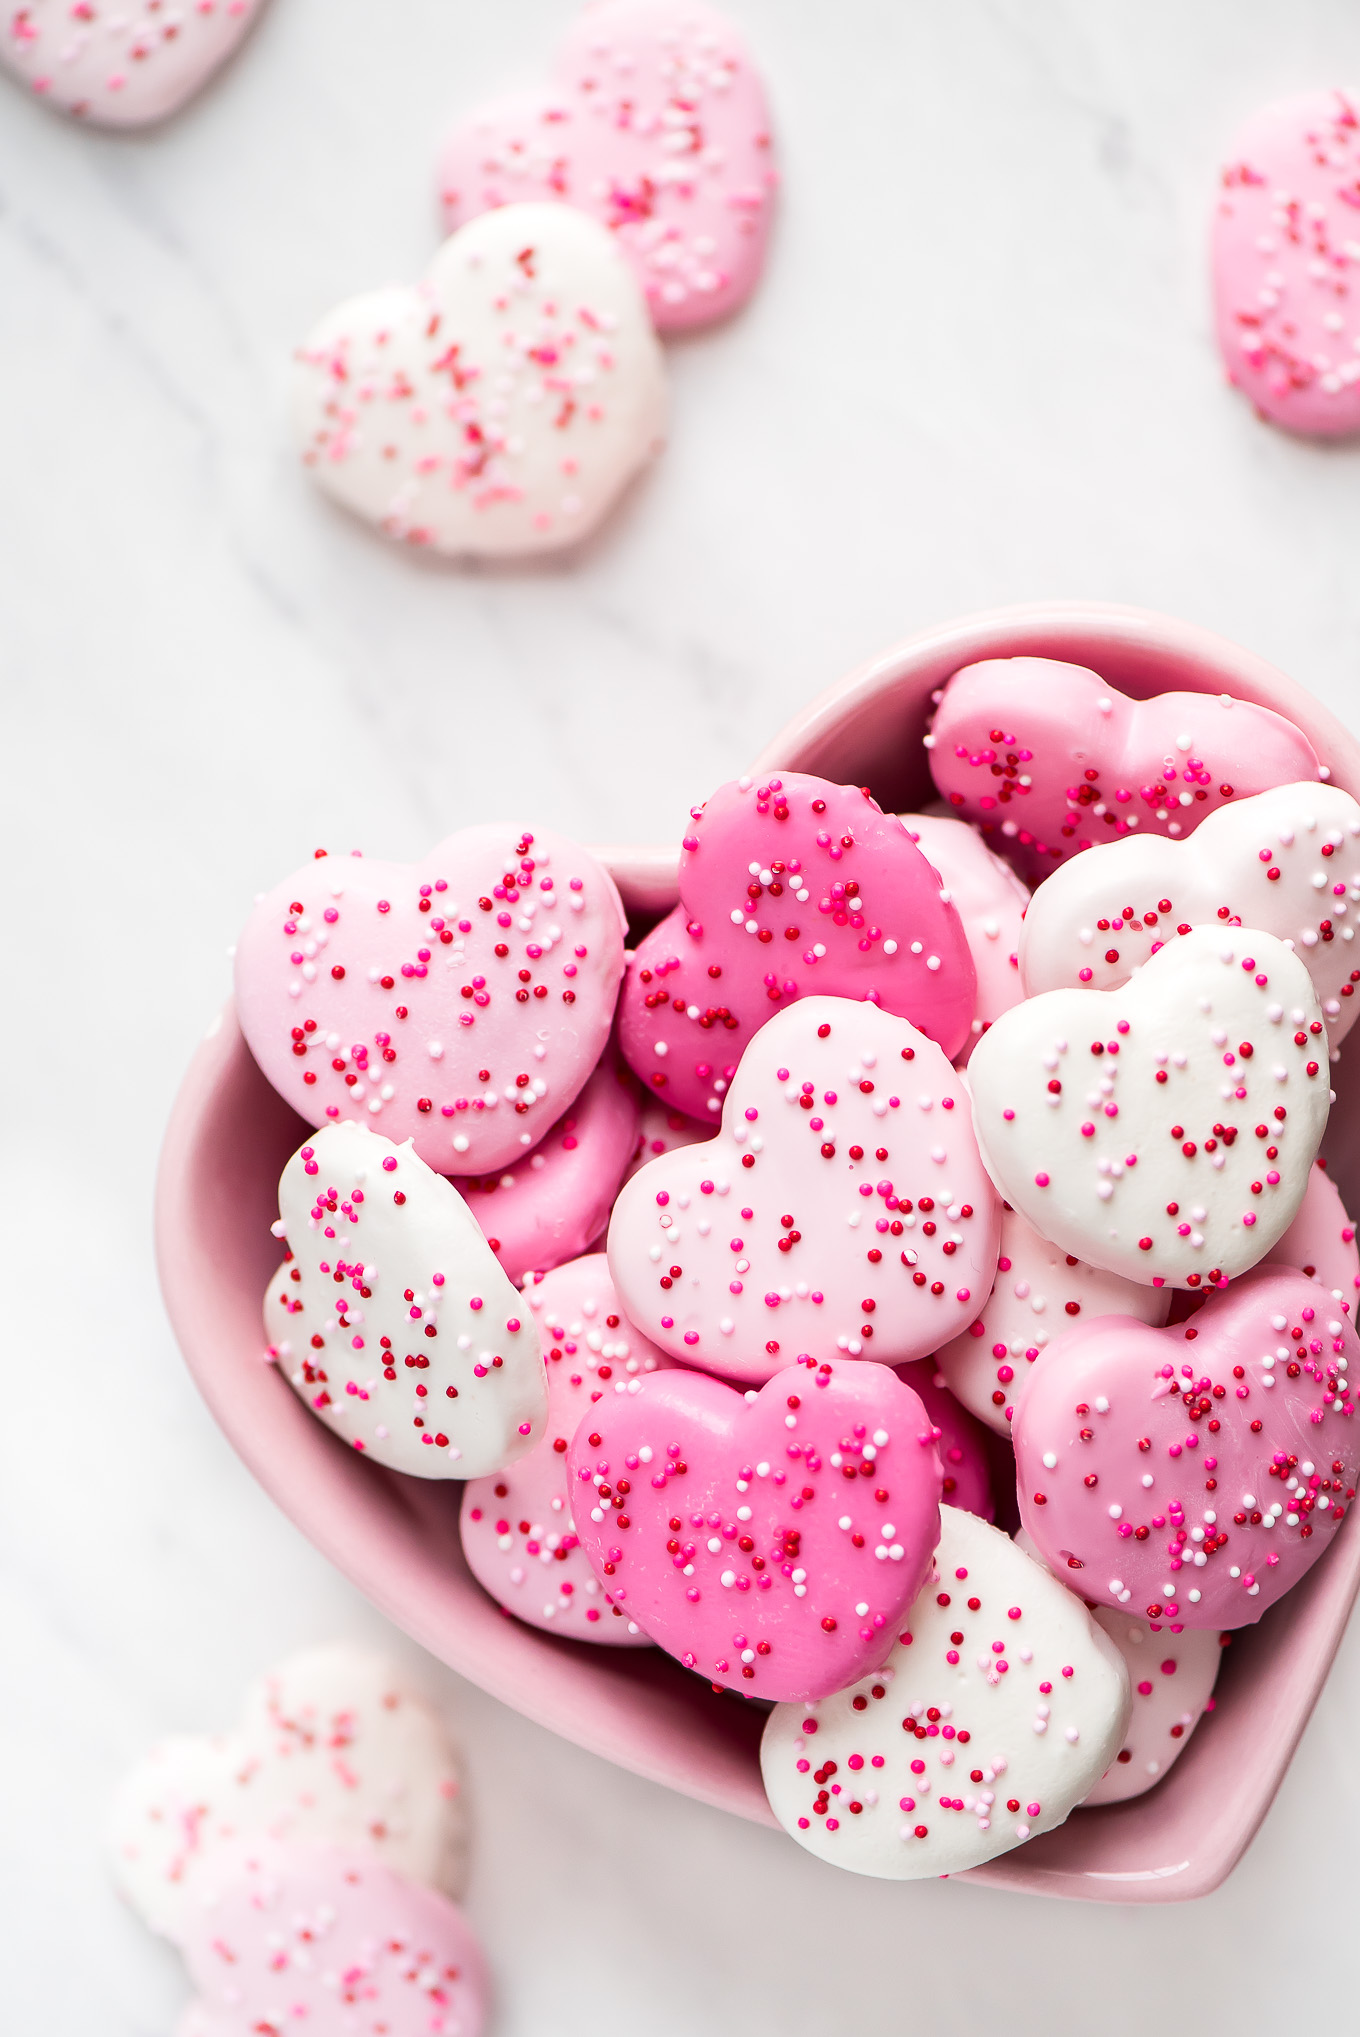 Pink & White Heart Circus Cookies in a heart shaped pink bowl with more cookies surrounding it.